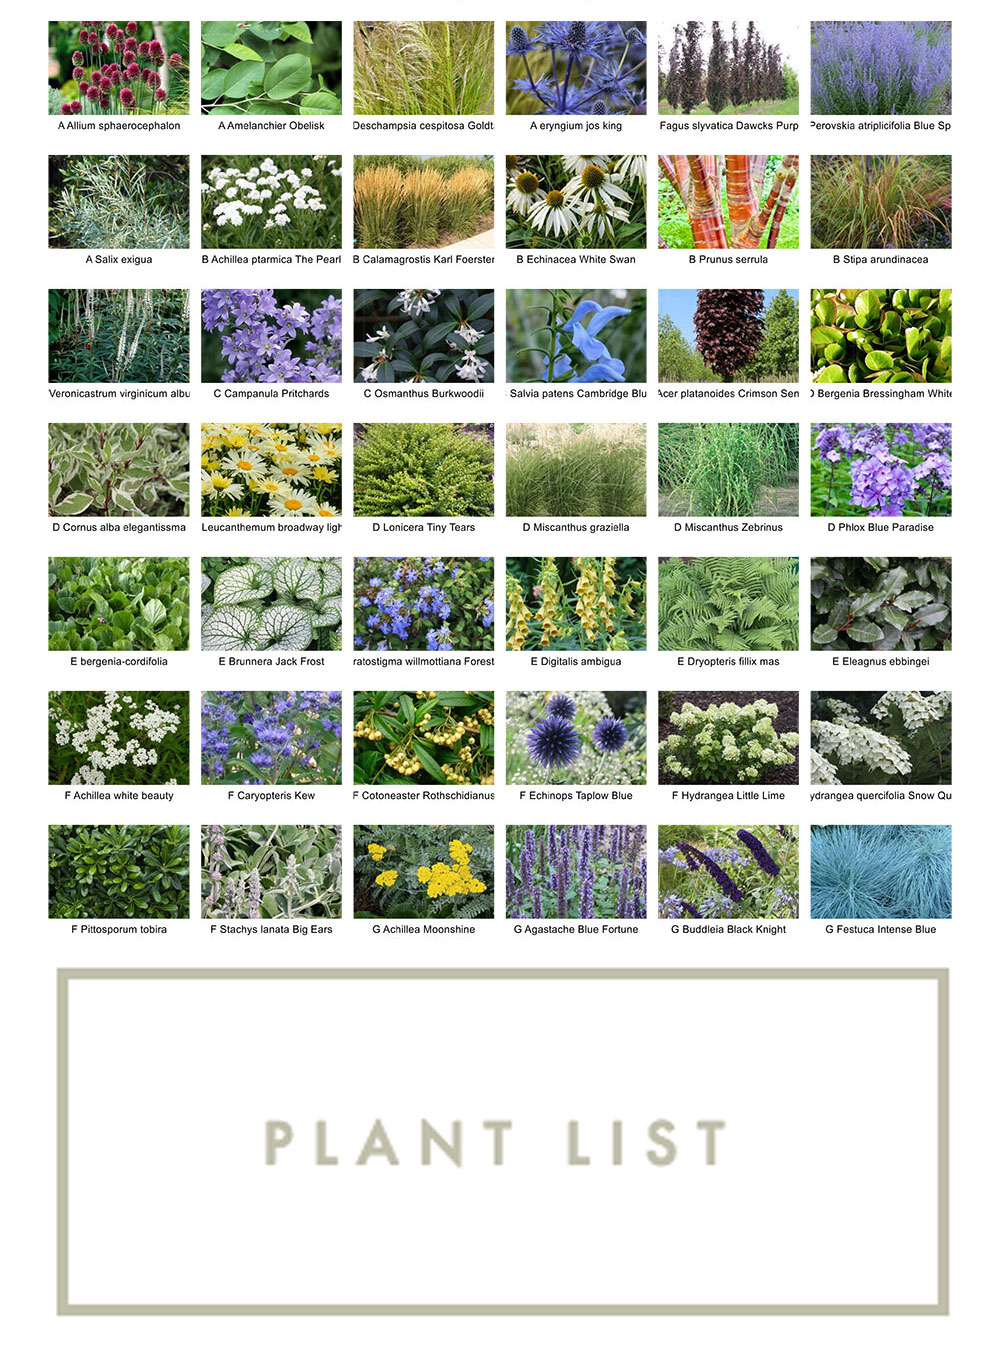 Plantlist-for-WebsiteThumbnail.jpg